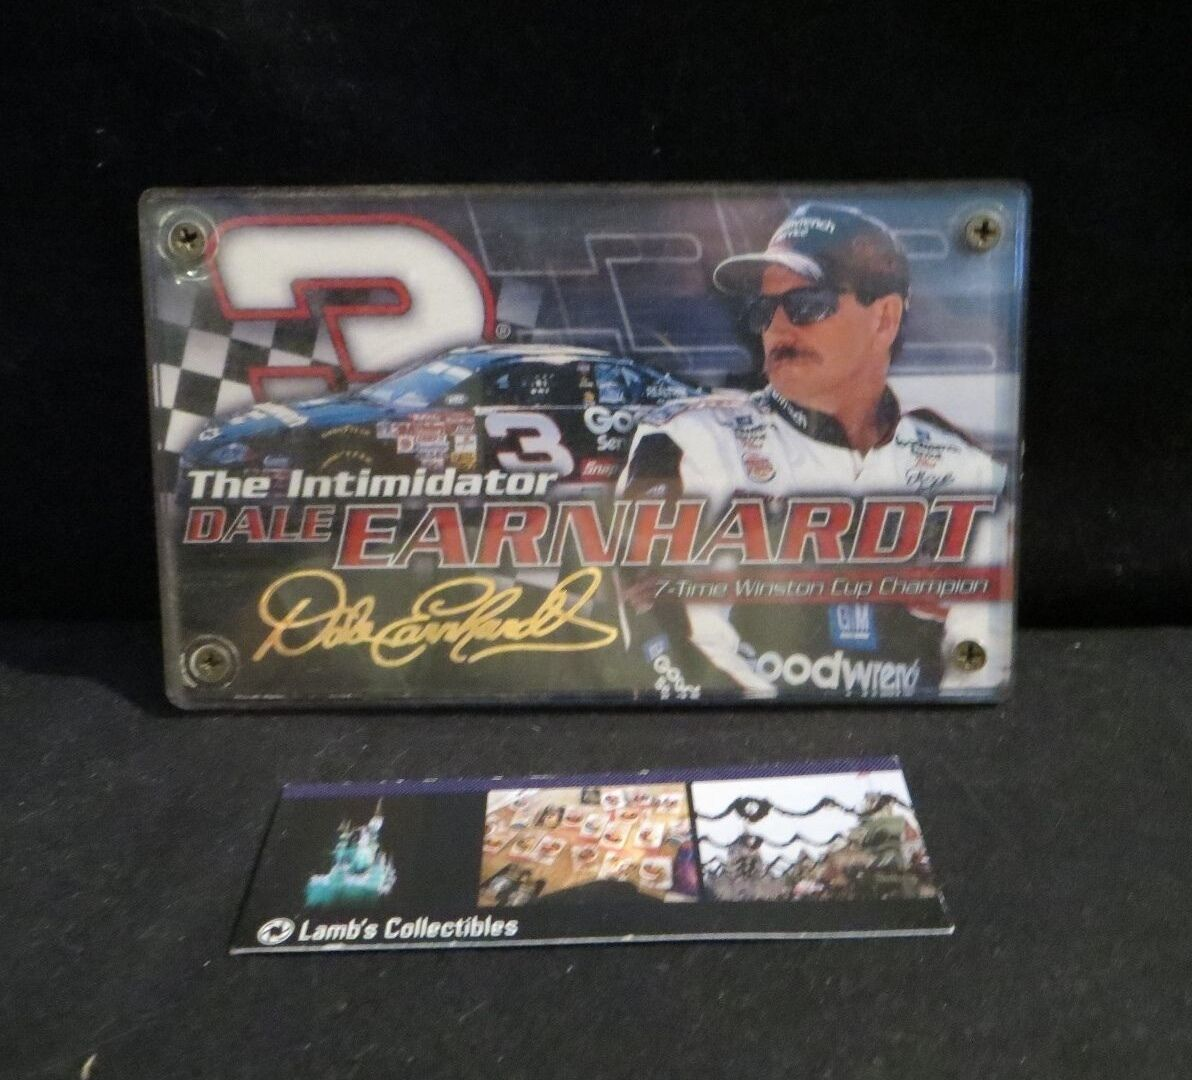 Primary image for Dale Earnhardt #3 card 24K gold signature plaque 2001 RCI Nascar collectible